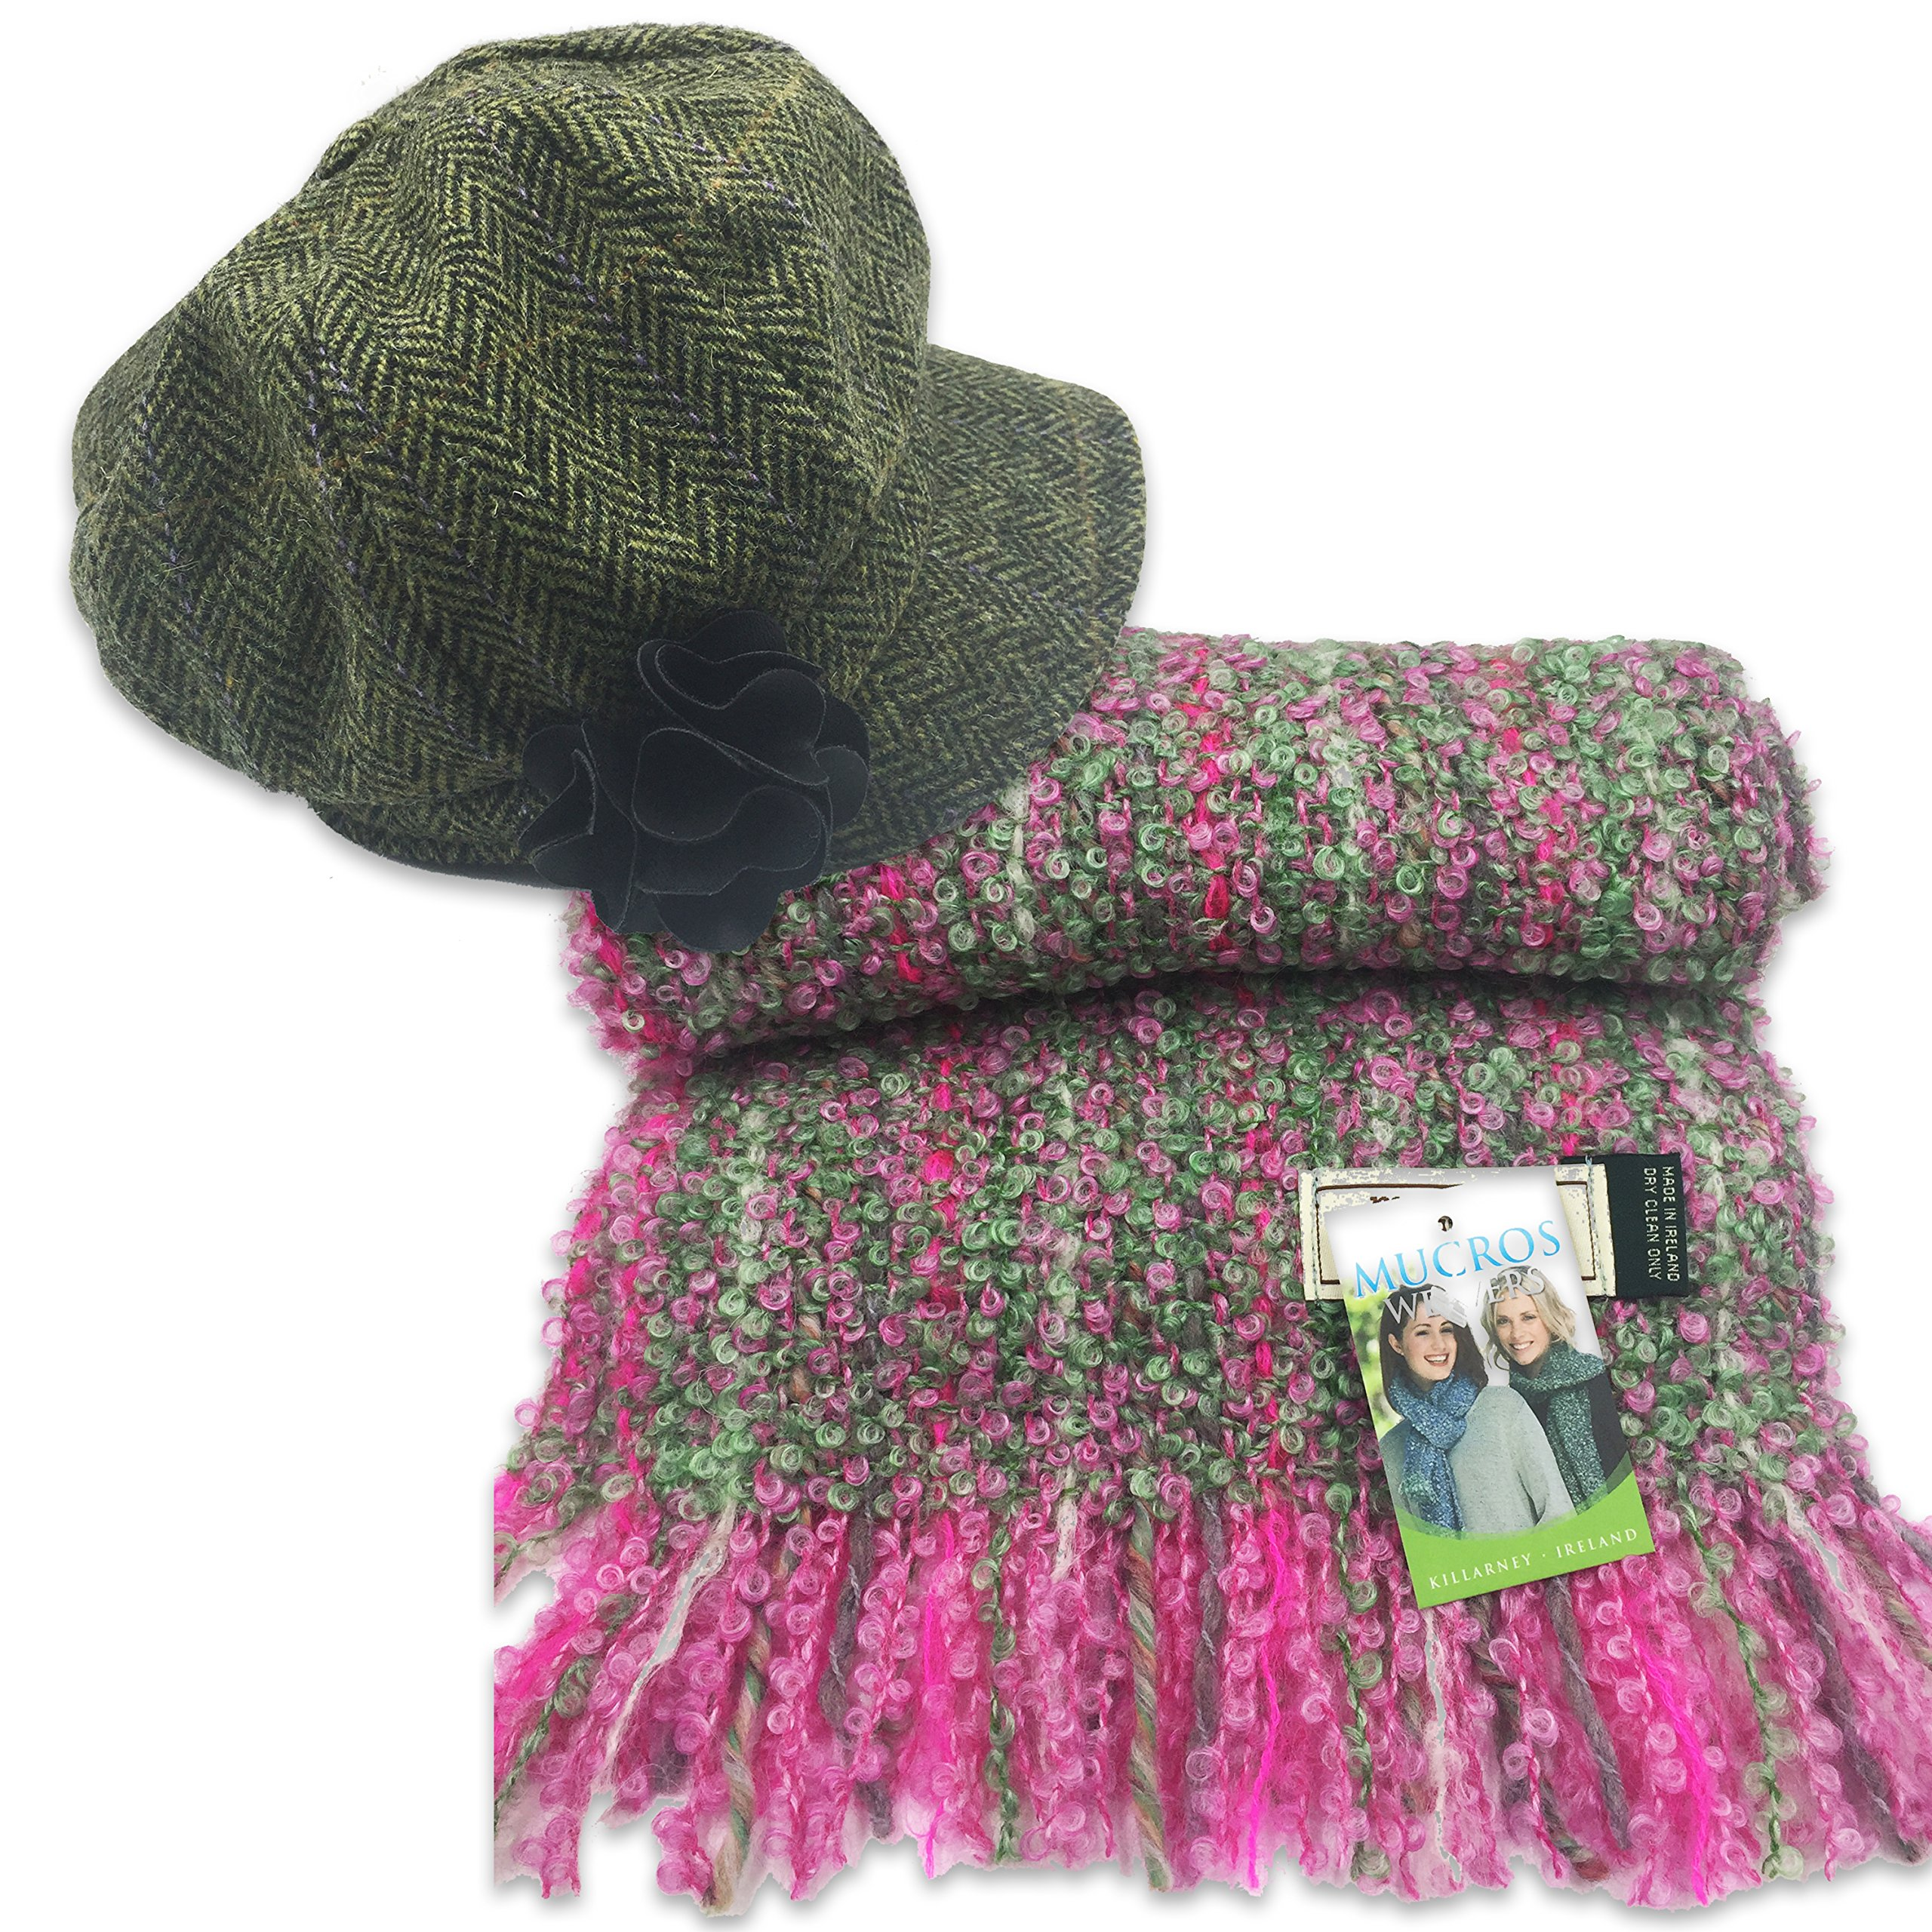 Mucros newsboy Cap (Green) and Mohair Viscose Scarf Set (Green and Pink)